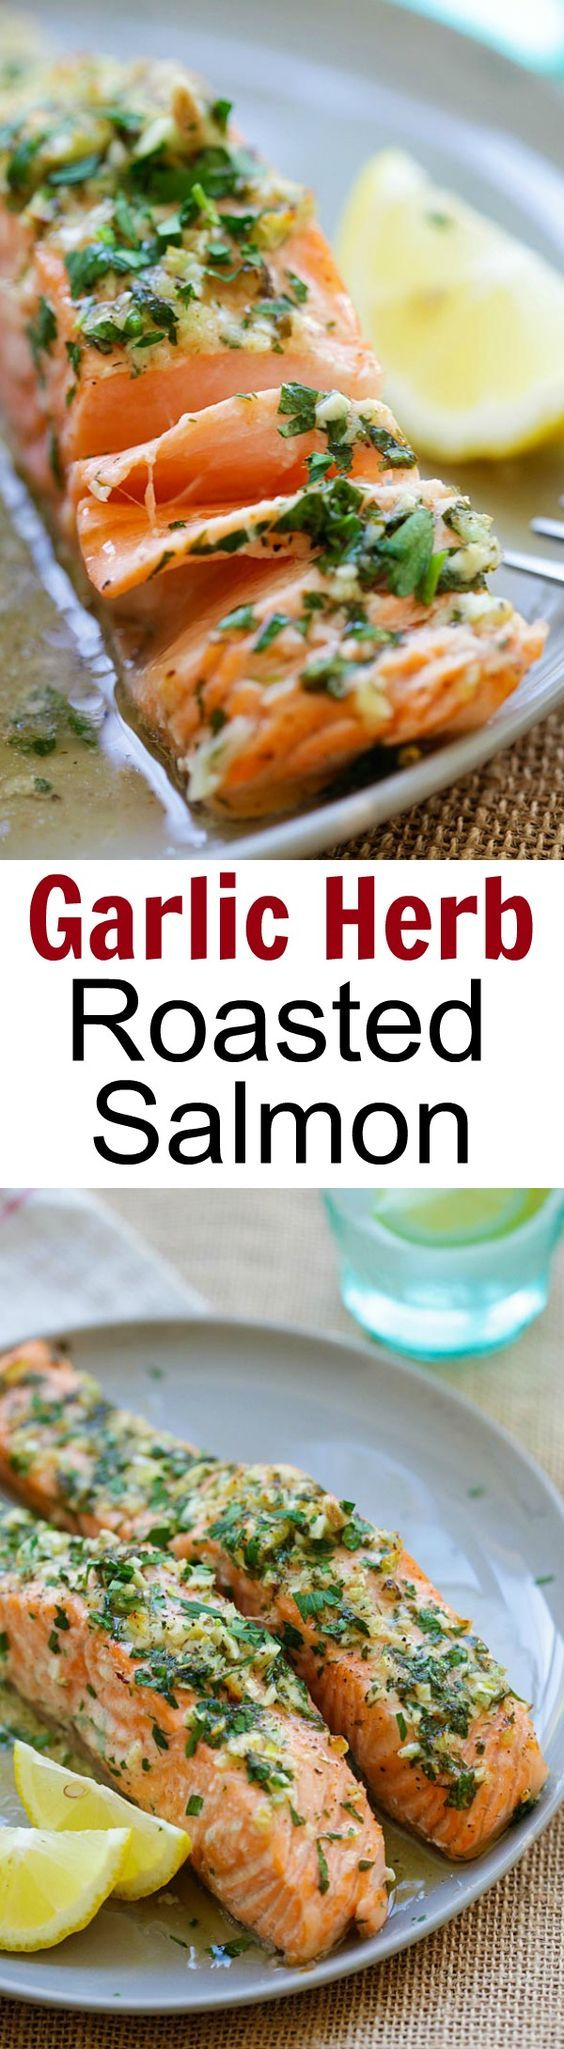 Garlic Herb Roasted Salmon – best roasted salmon recipe ever! Made with butter, garlic, herb, lemon and dinner is ready in 20 mins | rasamalaysia.com: